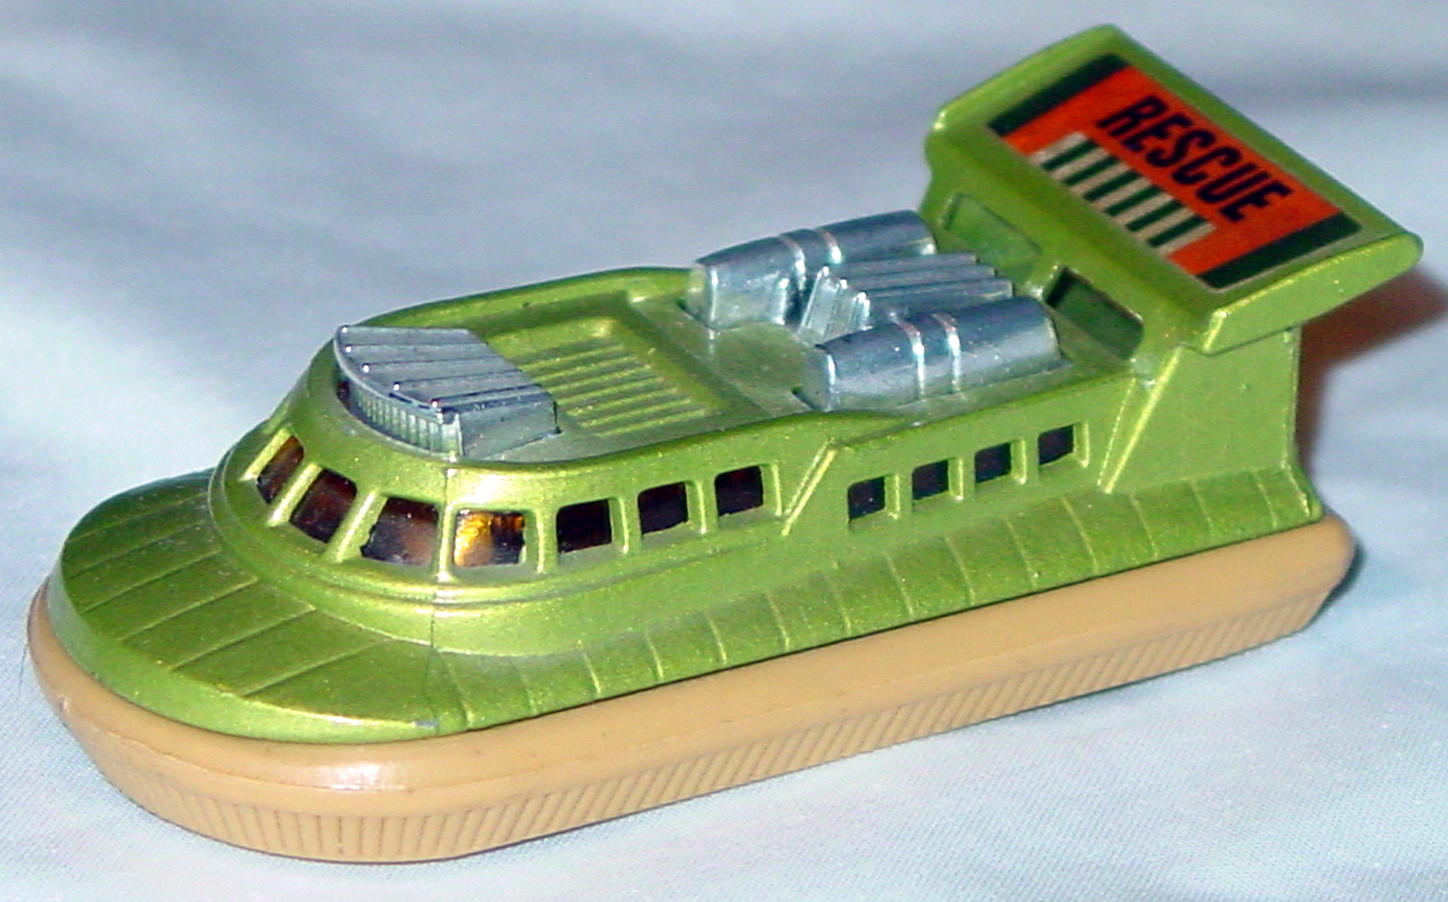 Lesney SuperFast 02 C 1 - Hovercraft lighter light green and tan silver air amber window Rescue